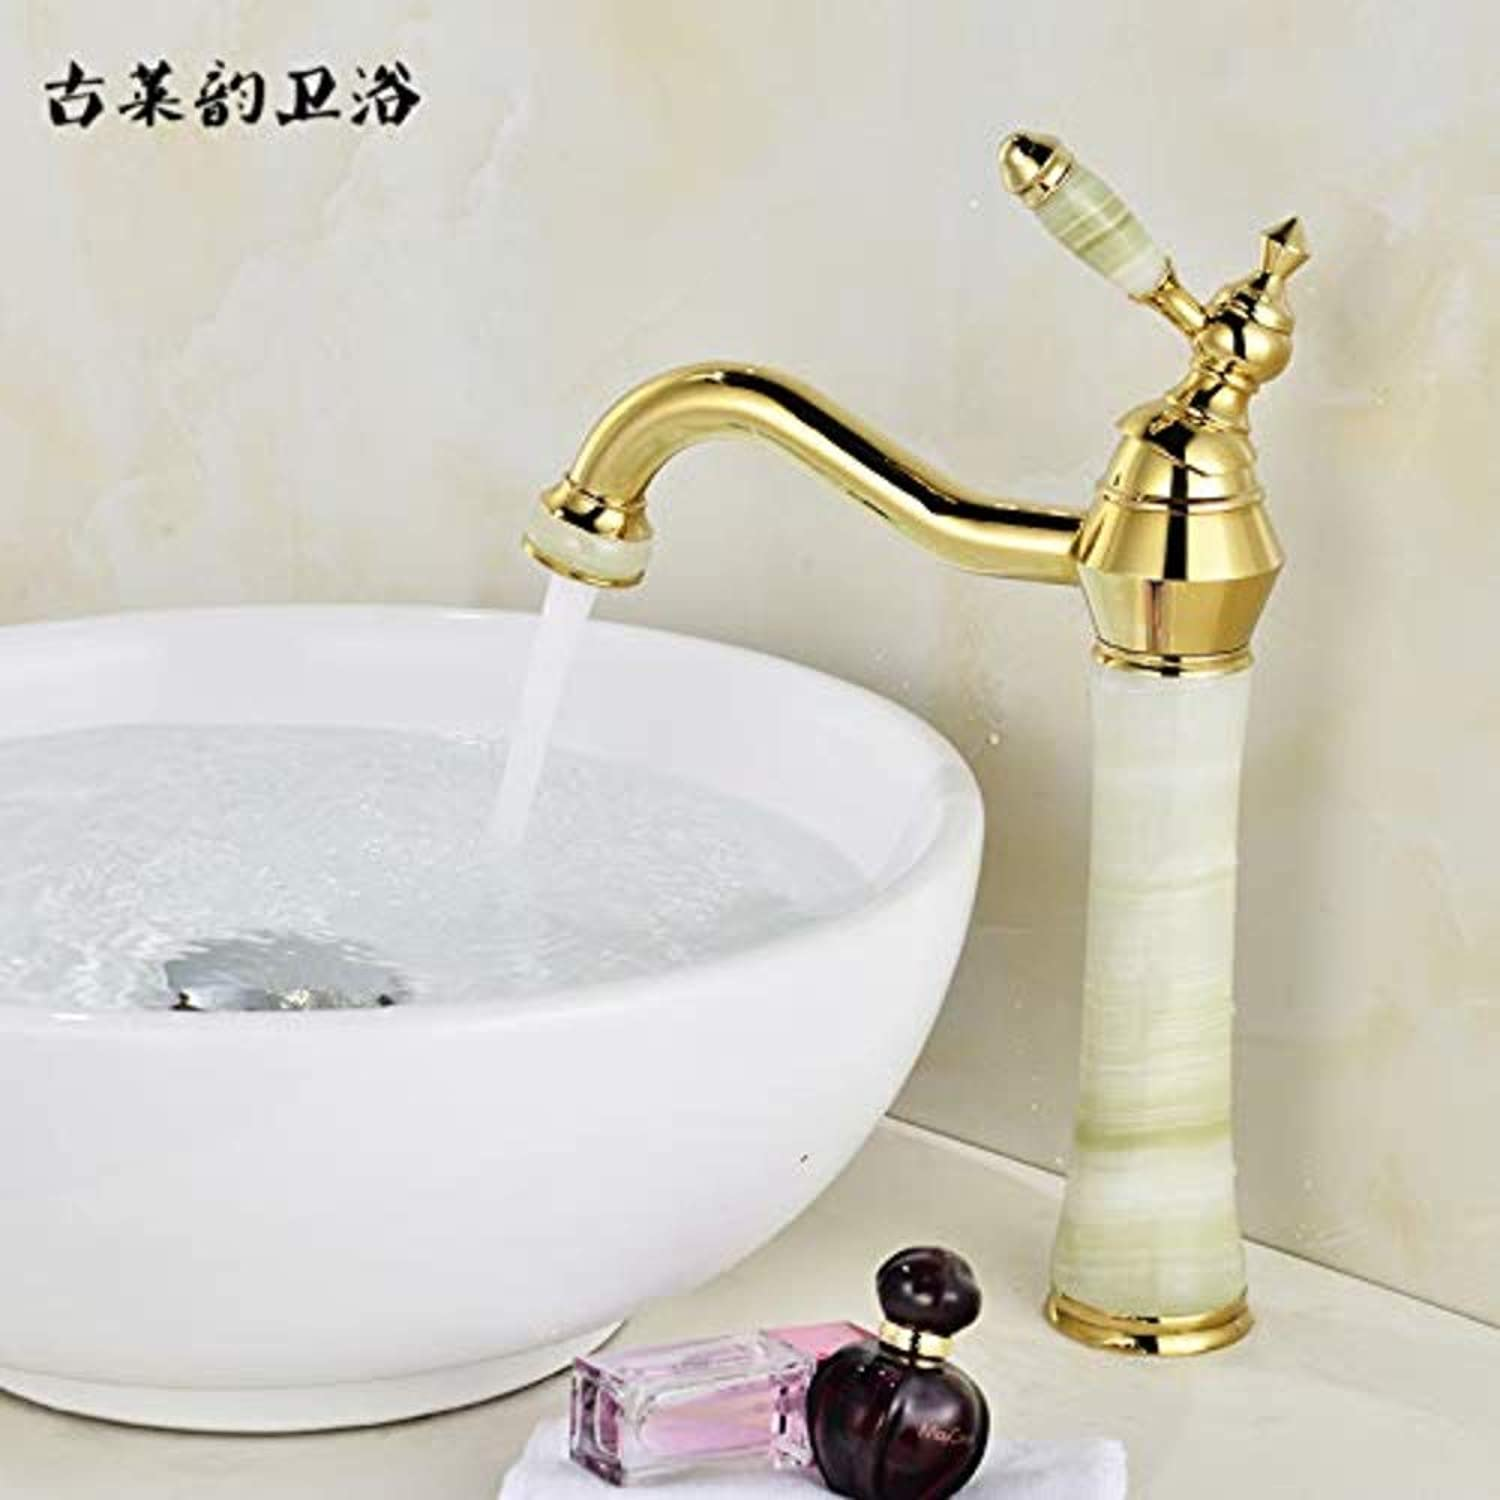 Water Tapfaucet Taps Heightening Faucet Full Copper gold Basin Washbasin Hot and Cold Faucet Natural Jade Above Counter Basin Faucet, Sapphire Plus High Pagoda [360 Degree redation]